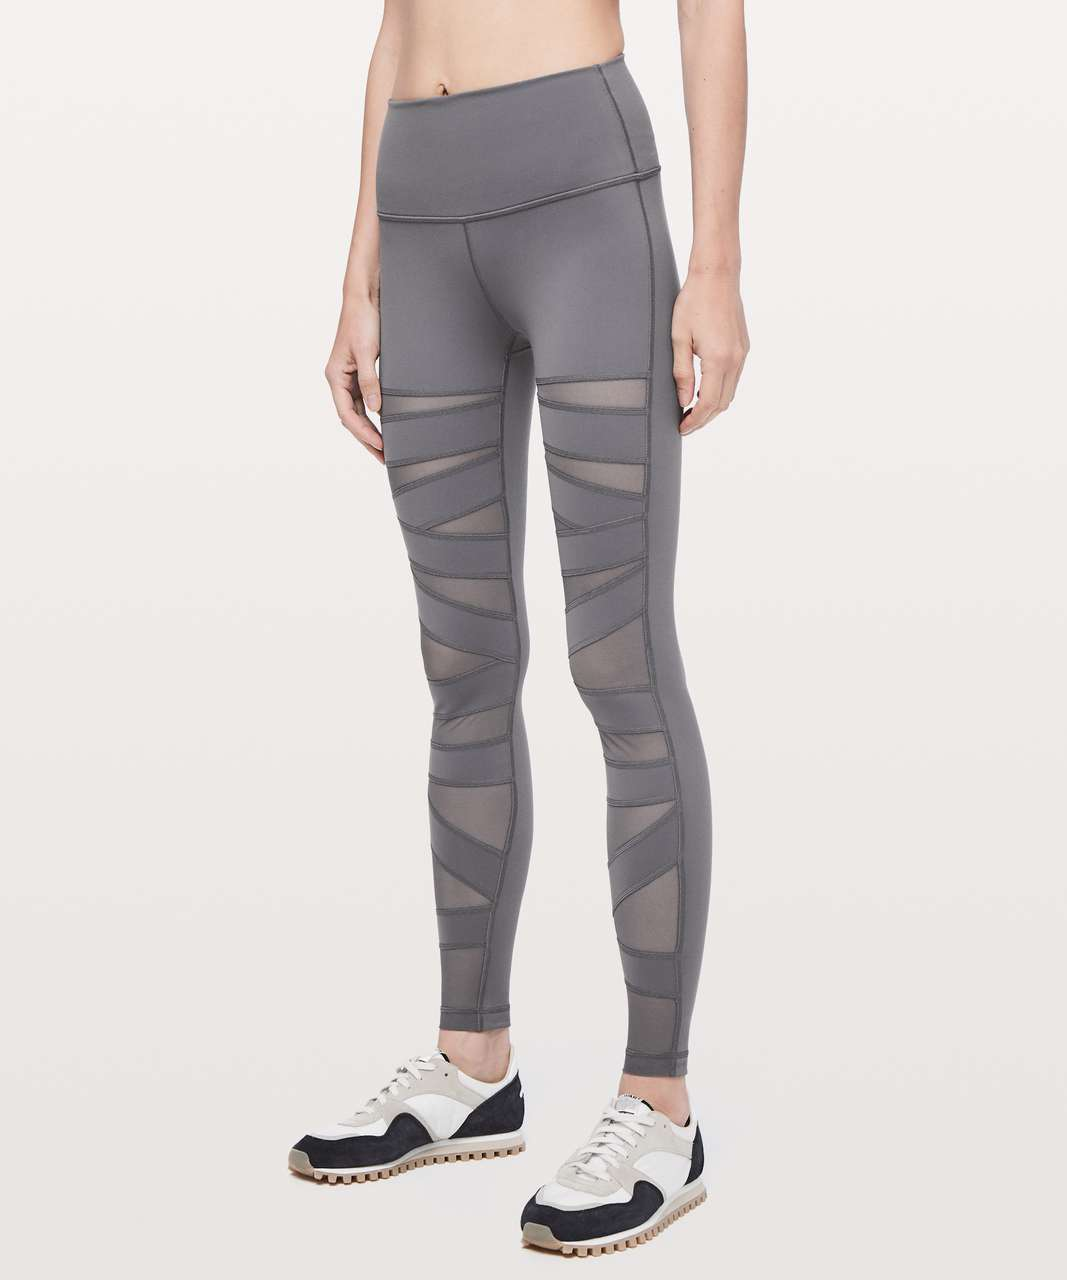 "Lululemon Wunder Under Pant (High-Rise) *Tech Mesh 28"" - Titanium"